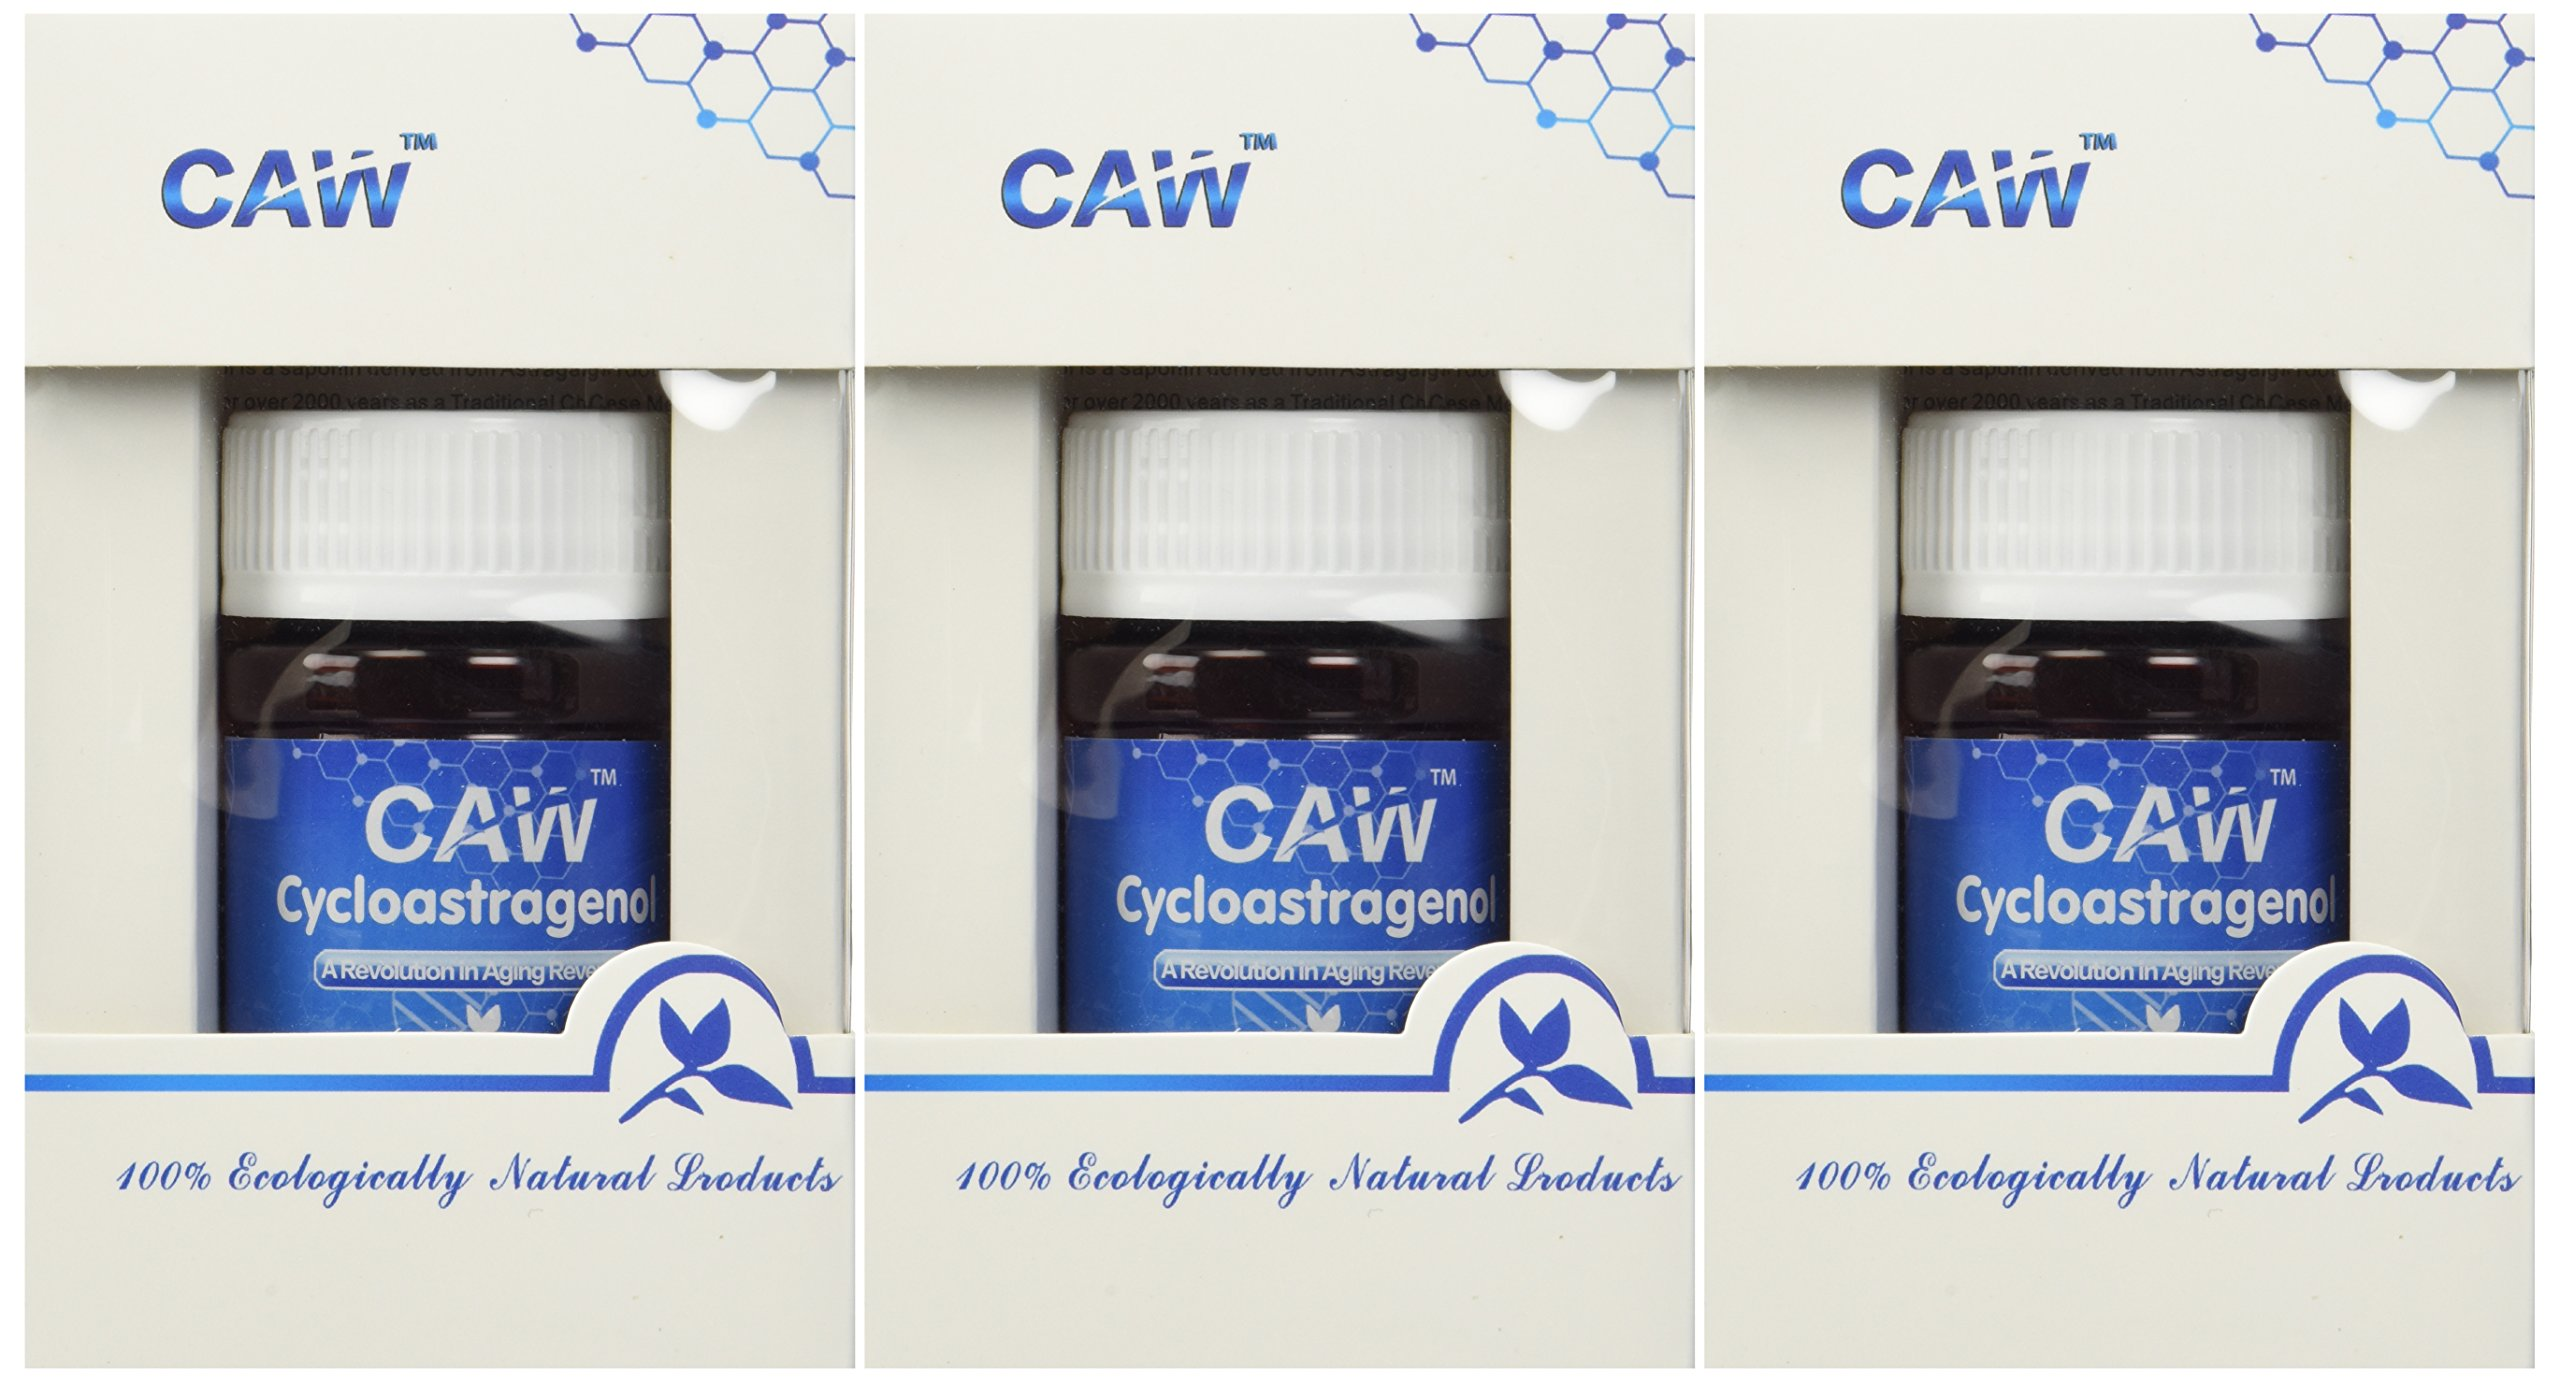 CAW Anti-Aging Supplement | Hypersorption Cycloastragenol 98% | 10mg 90enteric-Coated Capsules by CAW (Image #2)